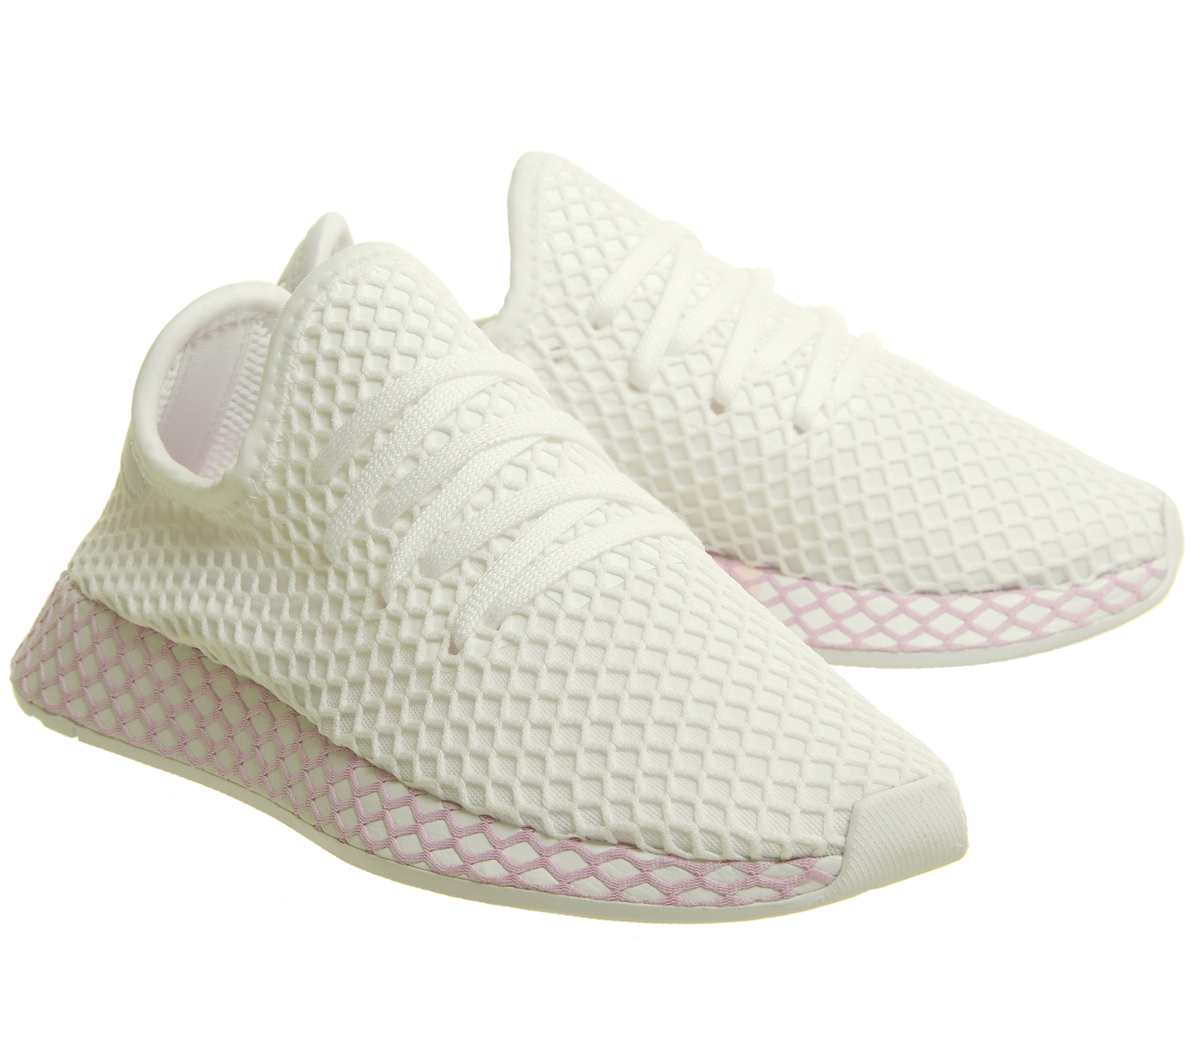 b57f4f76fe5f0 Womens Adidas Deerupt Trainers WHITE CLEAR LILAC F Trainers Shoes